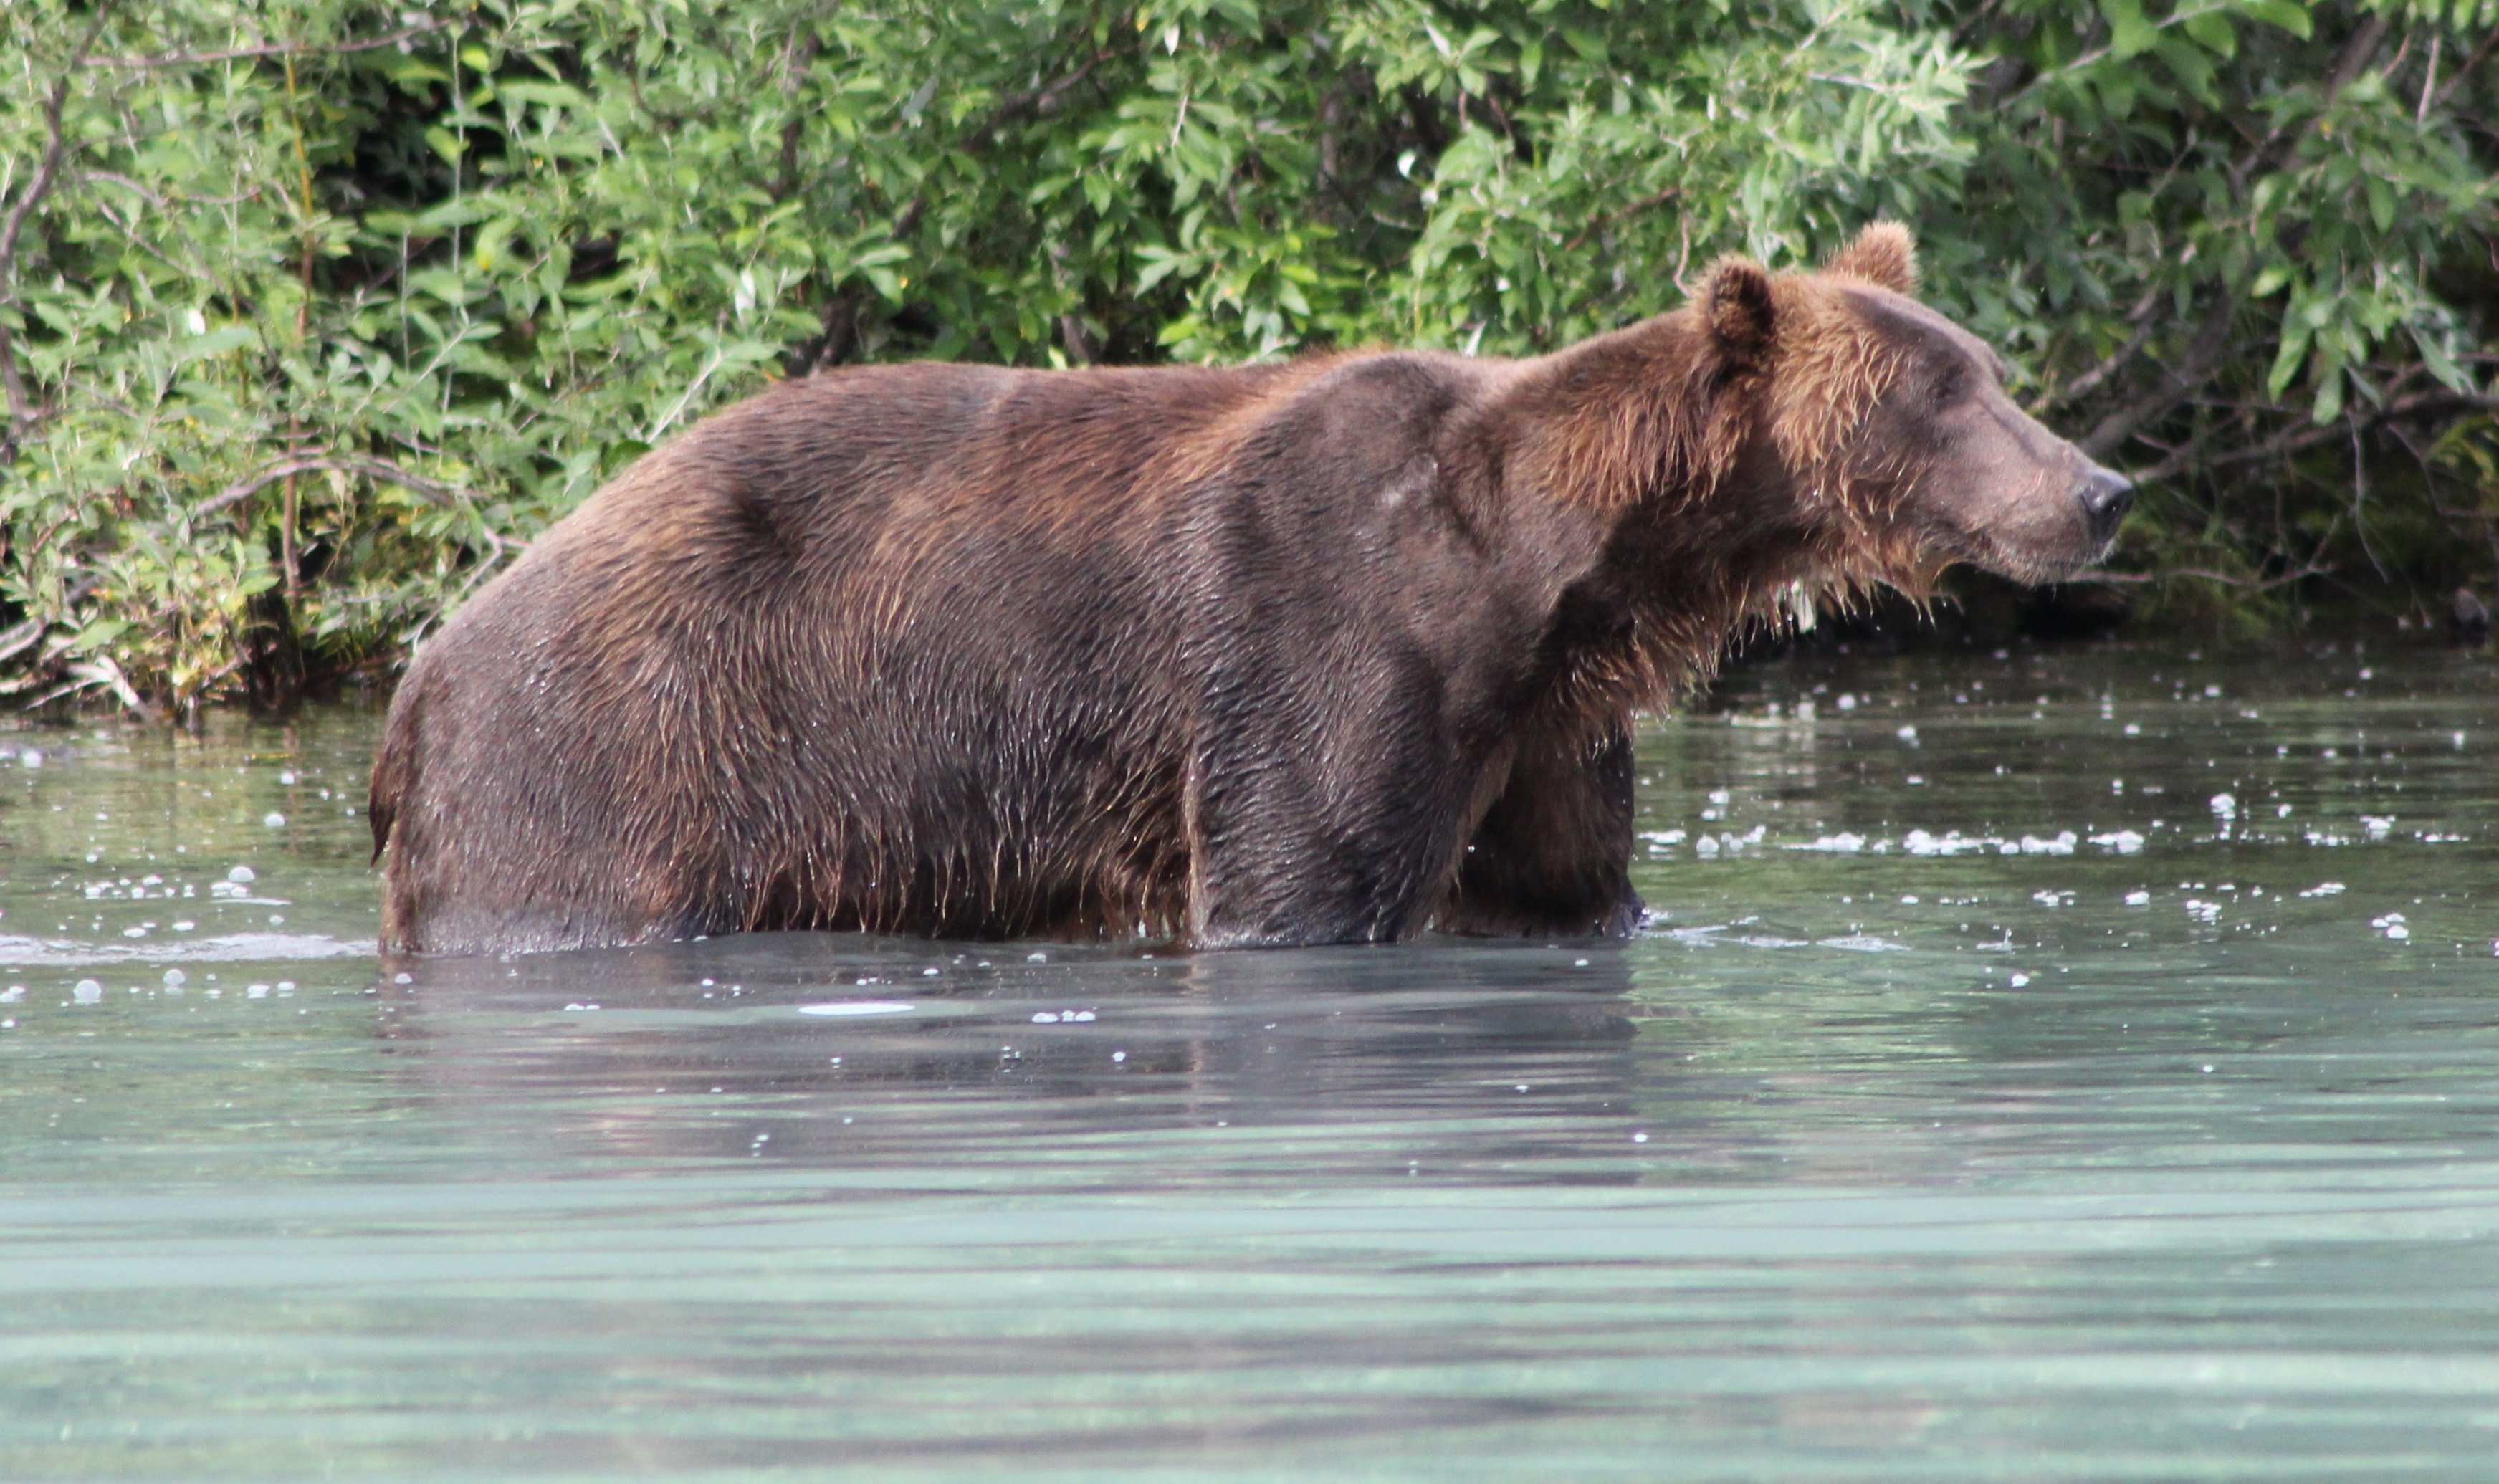 The only Brown Bear species larger than the Coastal Brown Bear is the genetically distinct subspecies the Kodiac Bear (Ursus arctos middendorffi). The omnivorous Coastal Brown Bears we saw had grown to their huge size due to the protein rich diet provided by this environment.